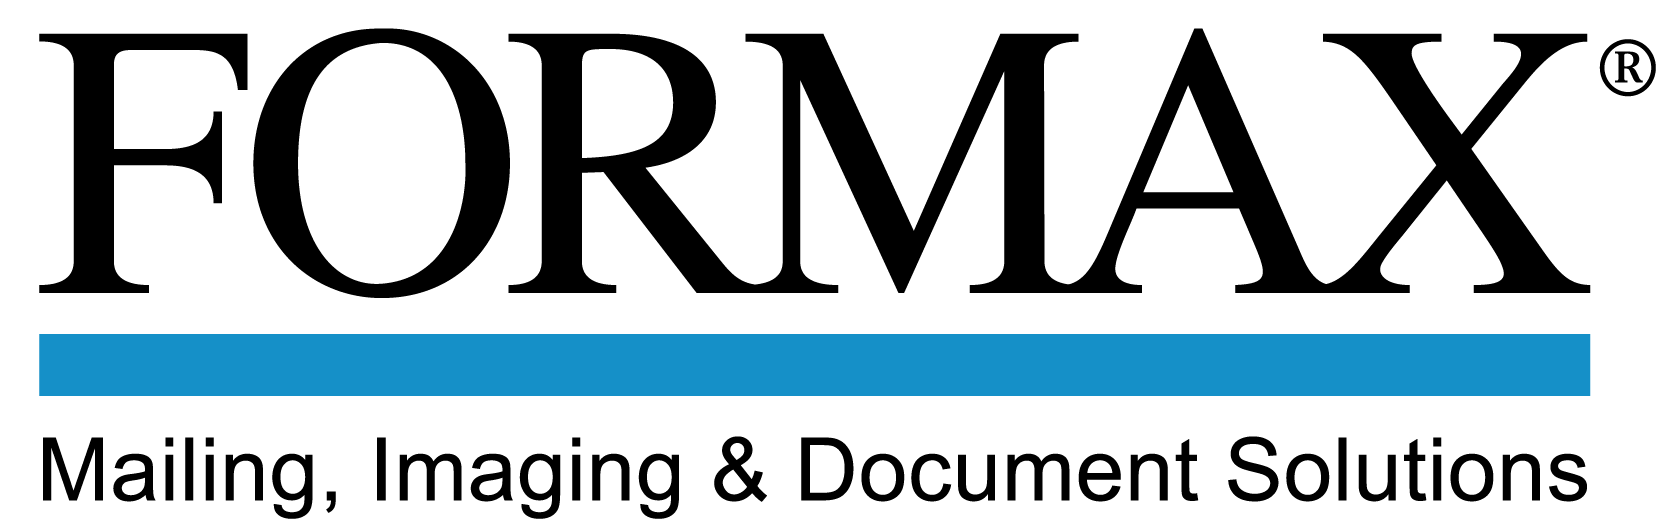 Formax-Direct-Logo-Mailing-Imaging-and-Document-Solutions-6in-01.png